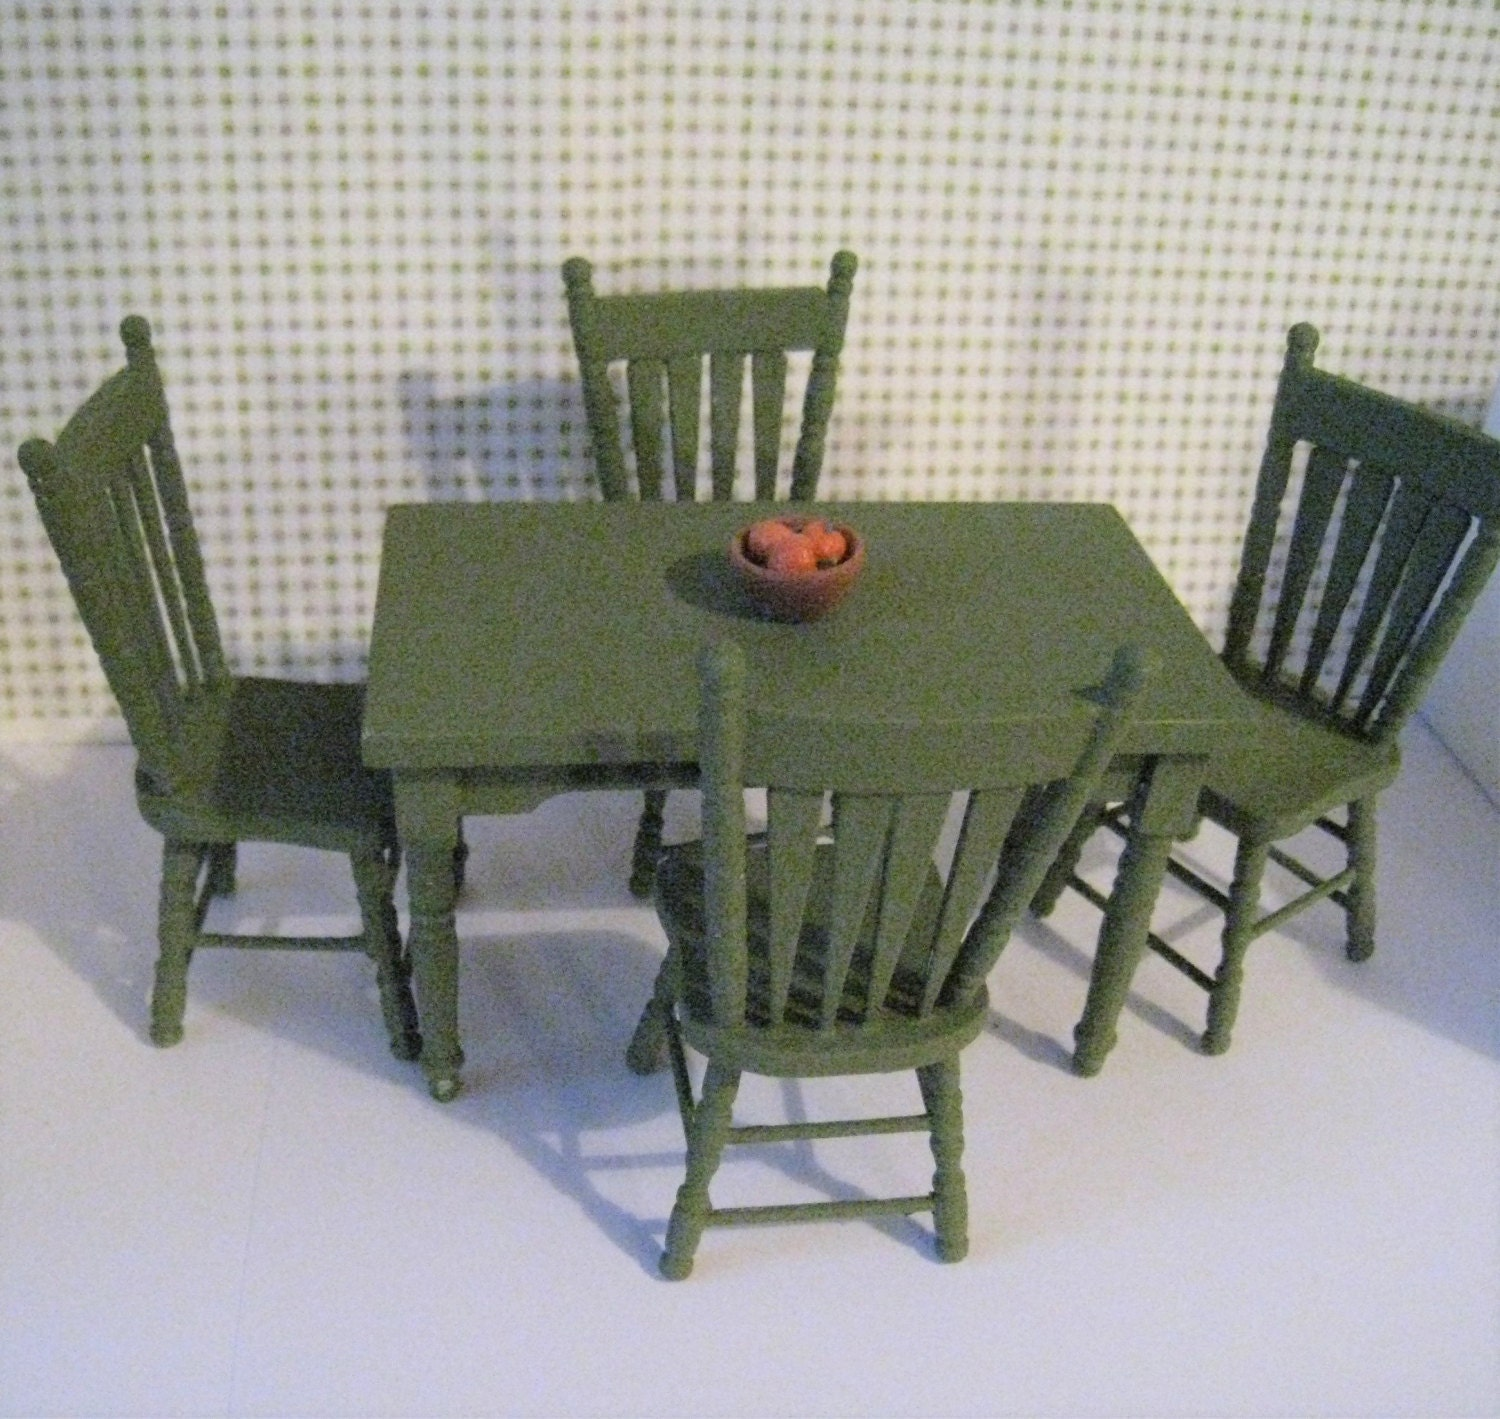 Kitchen Table Sale: Dollhouse Kitchen Table SALE Kitchen Chairs Round Table